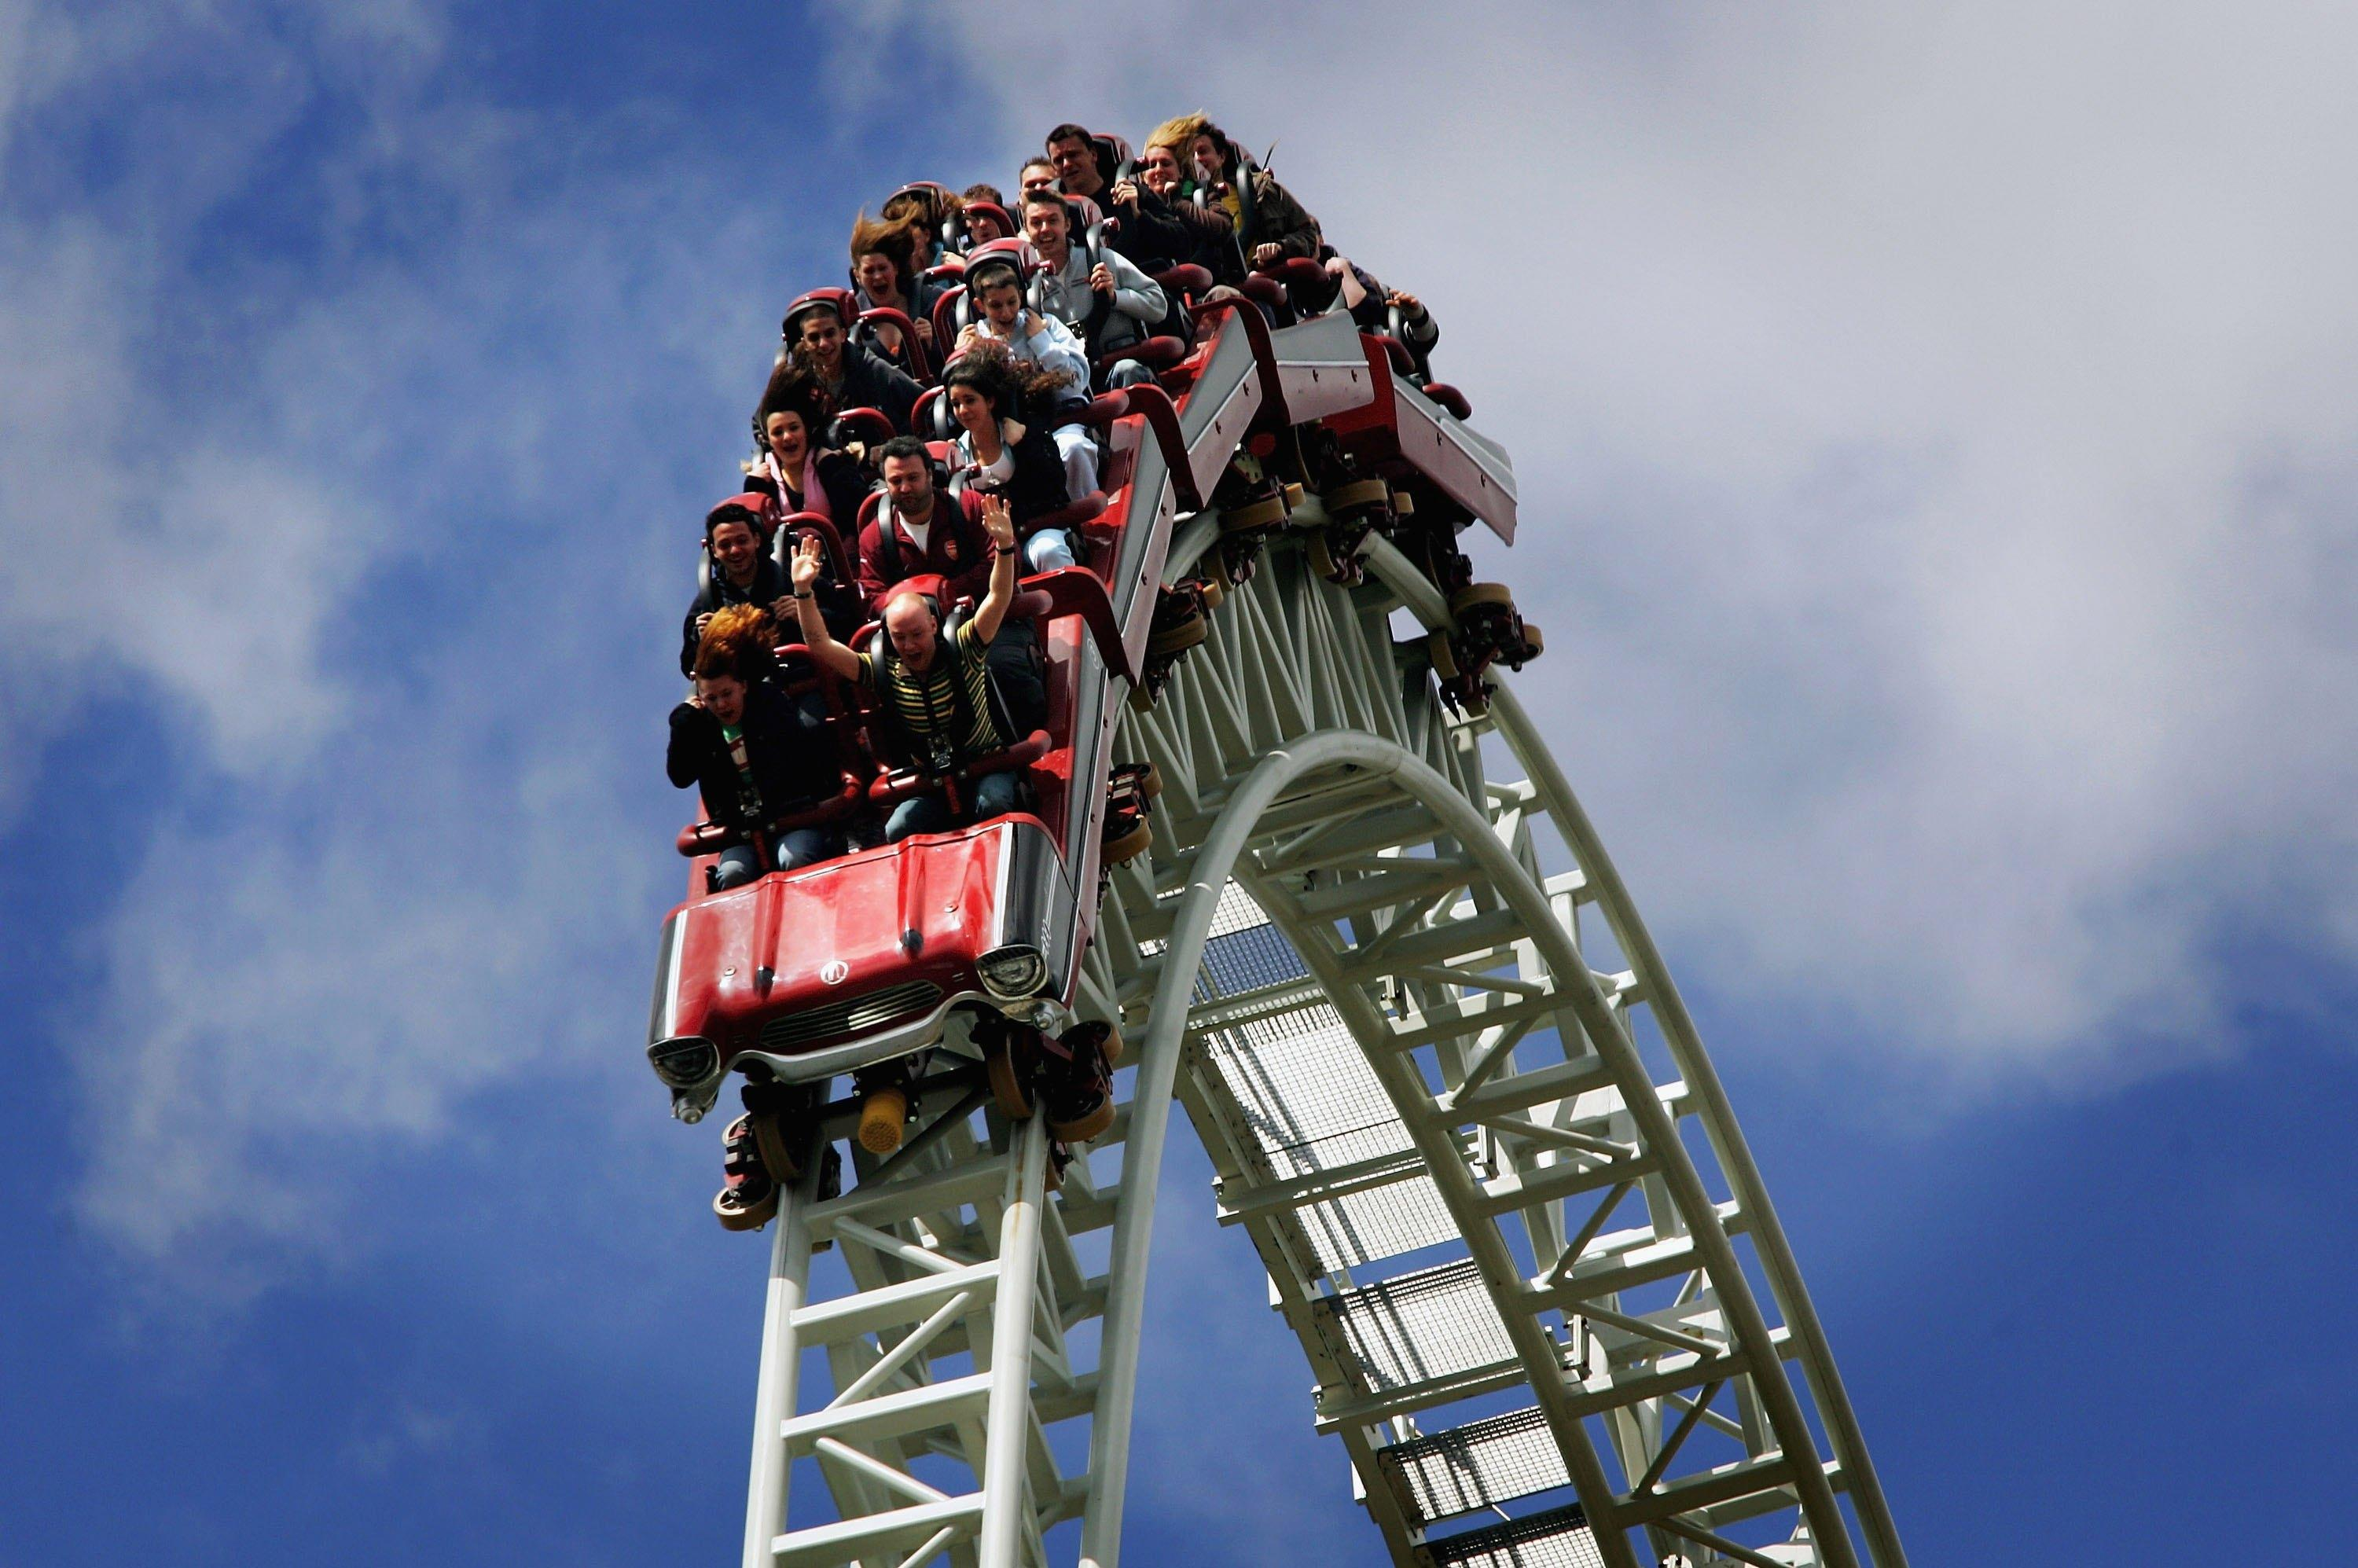 Dozens left hanging upside down 100 feet high on Japanese rollercoaster